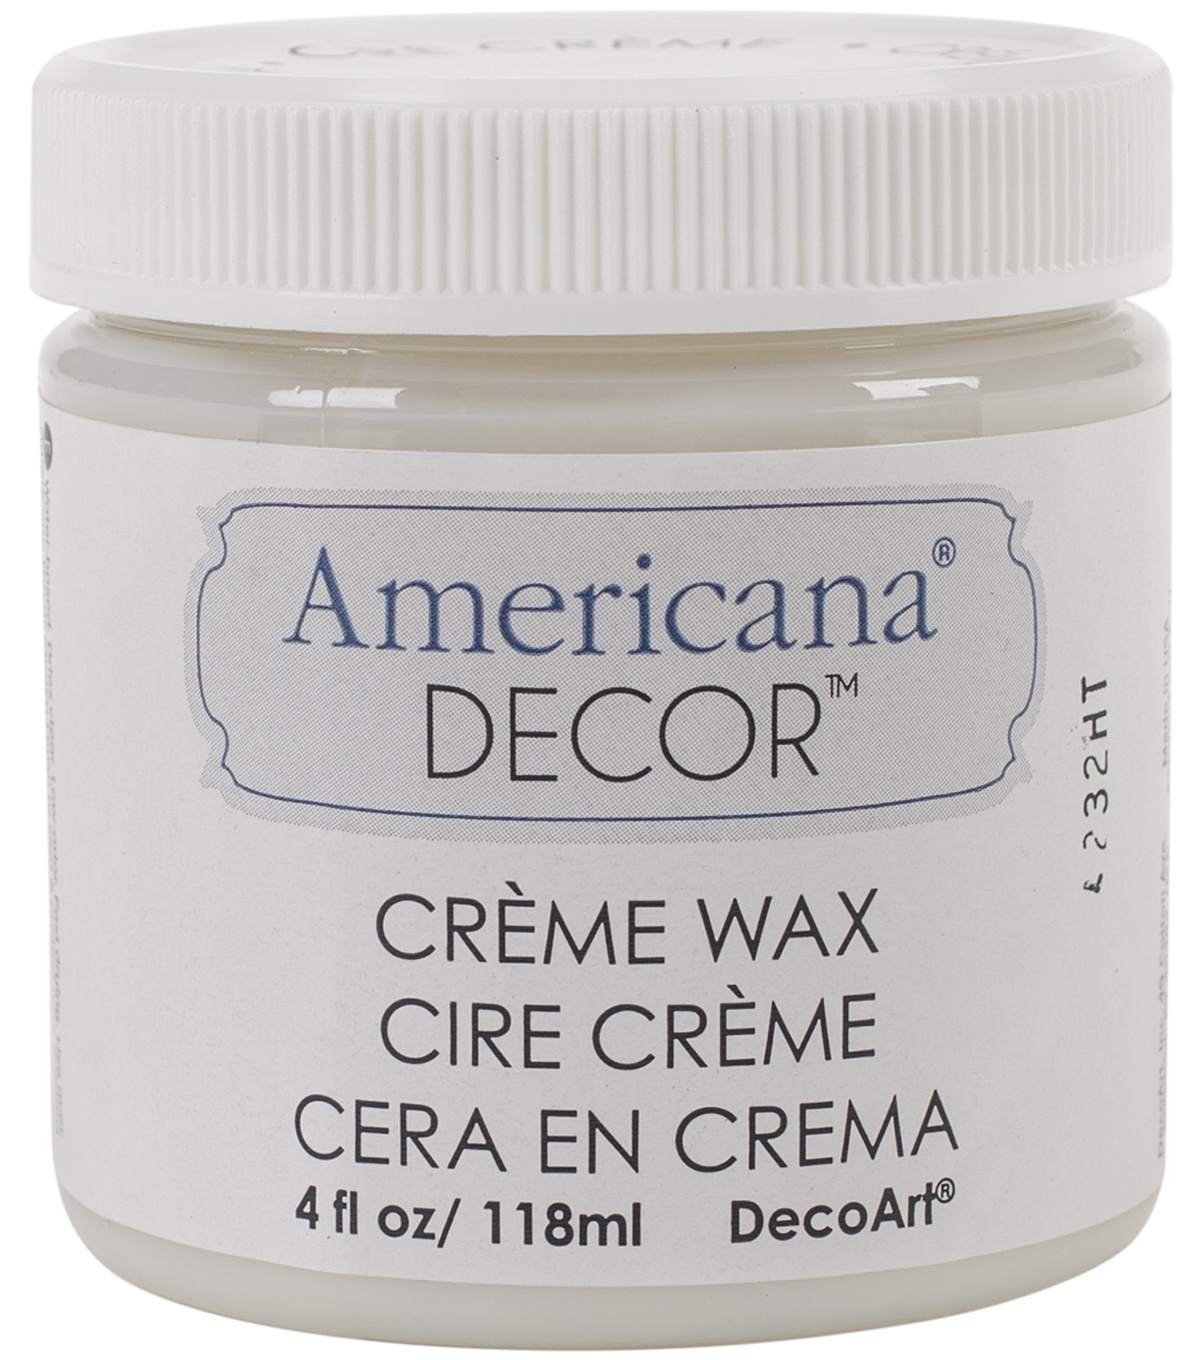 DecoArt Americana Decor Creme Wax 4oz , Clear